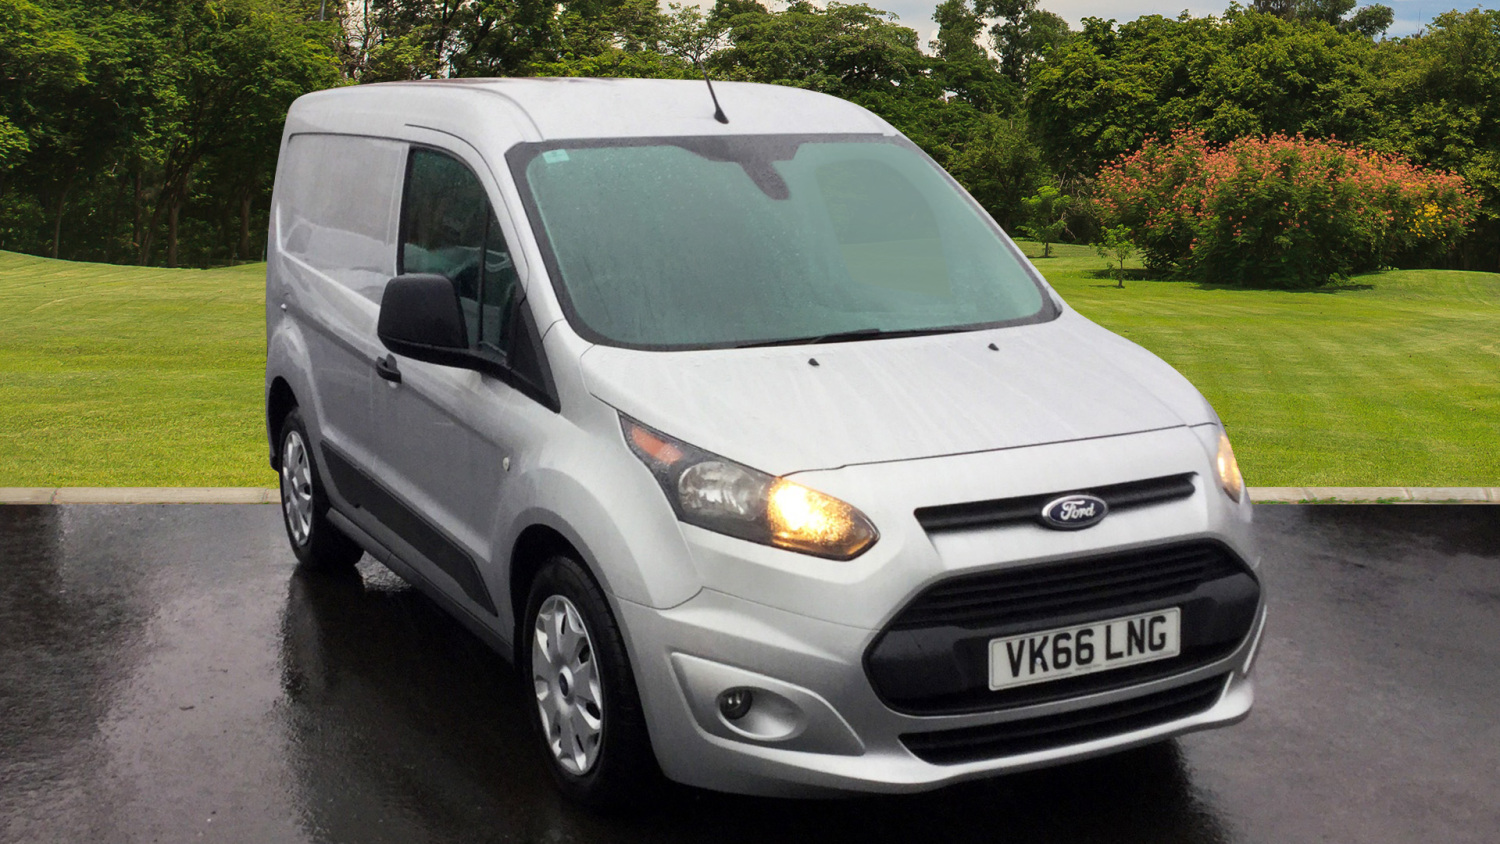 Used Ford Transit Connect 200 L1 Diesel 1.5 Tdci 75Ps Trend Van for Sale in Scotland | Macklin ...